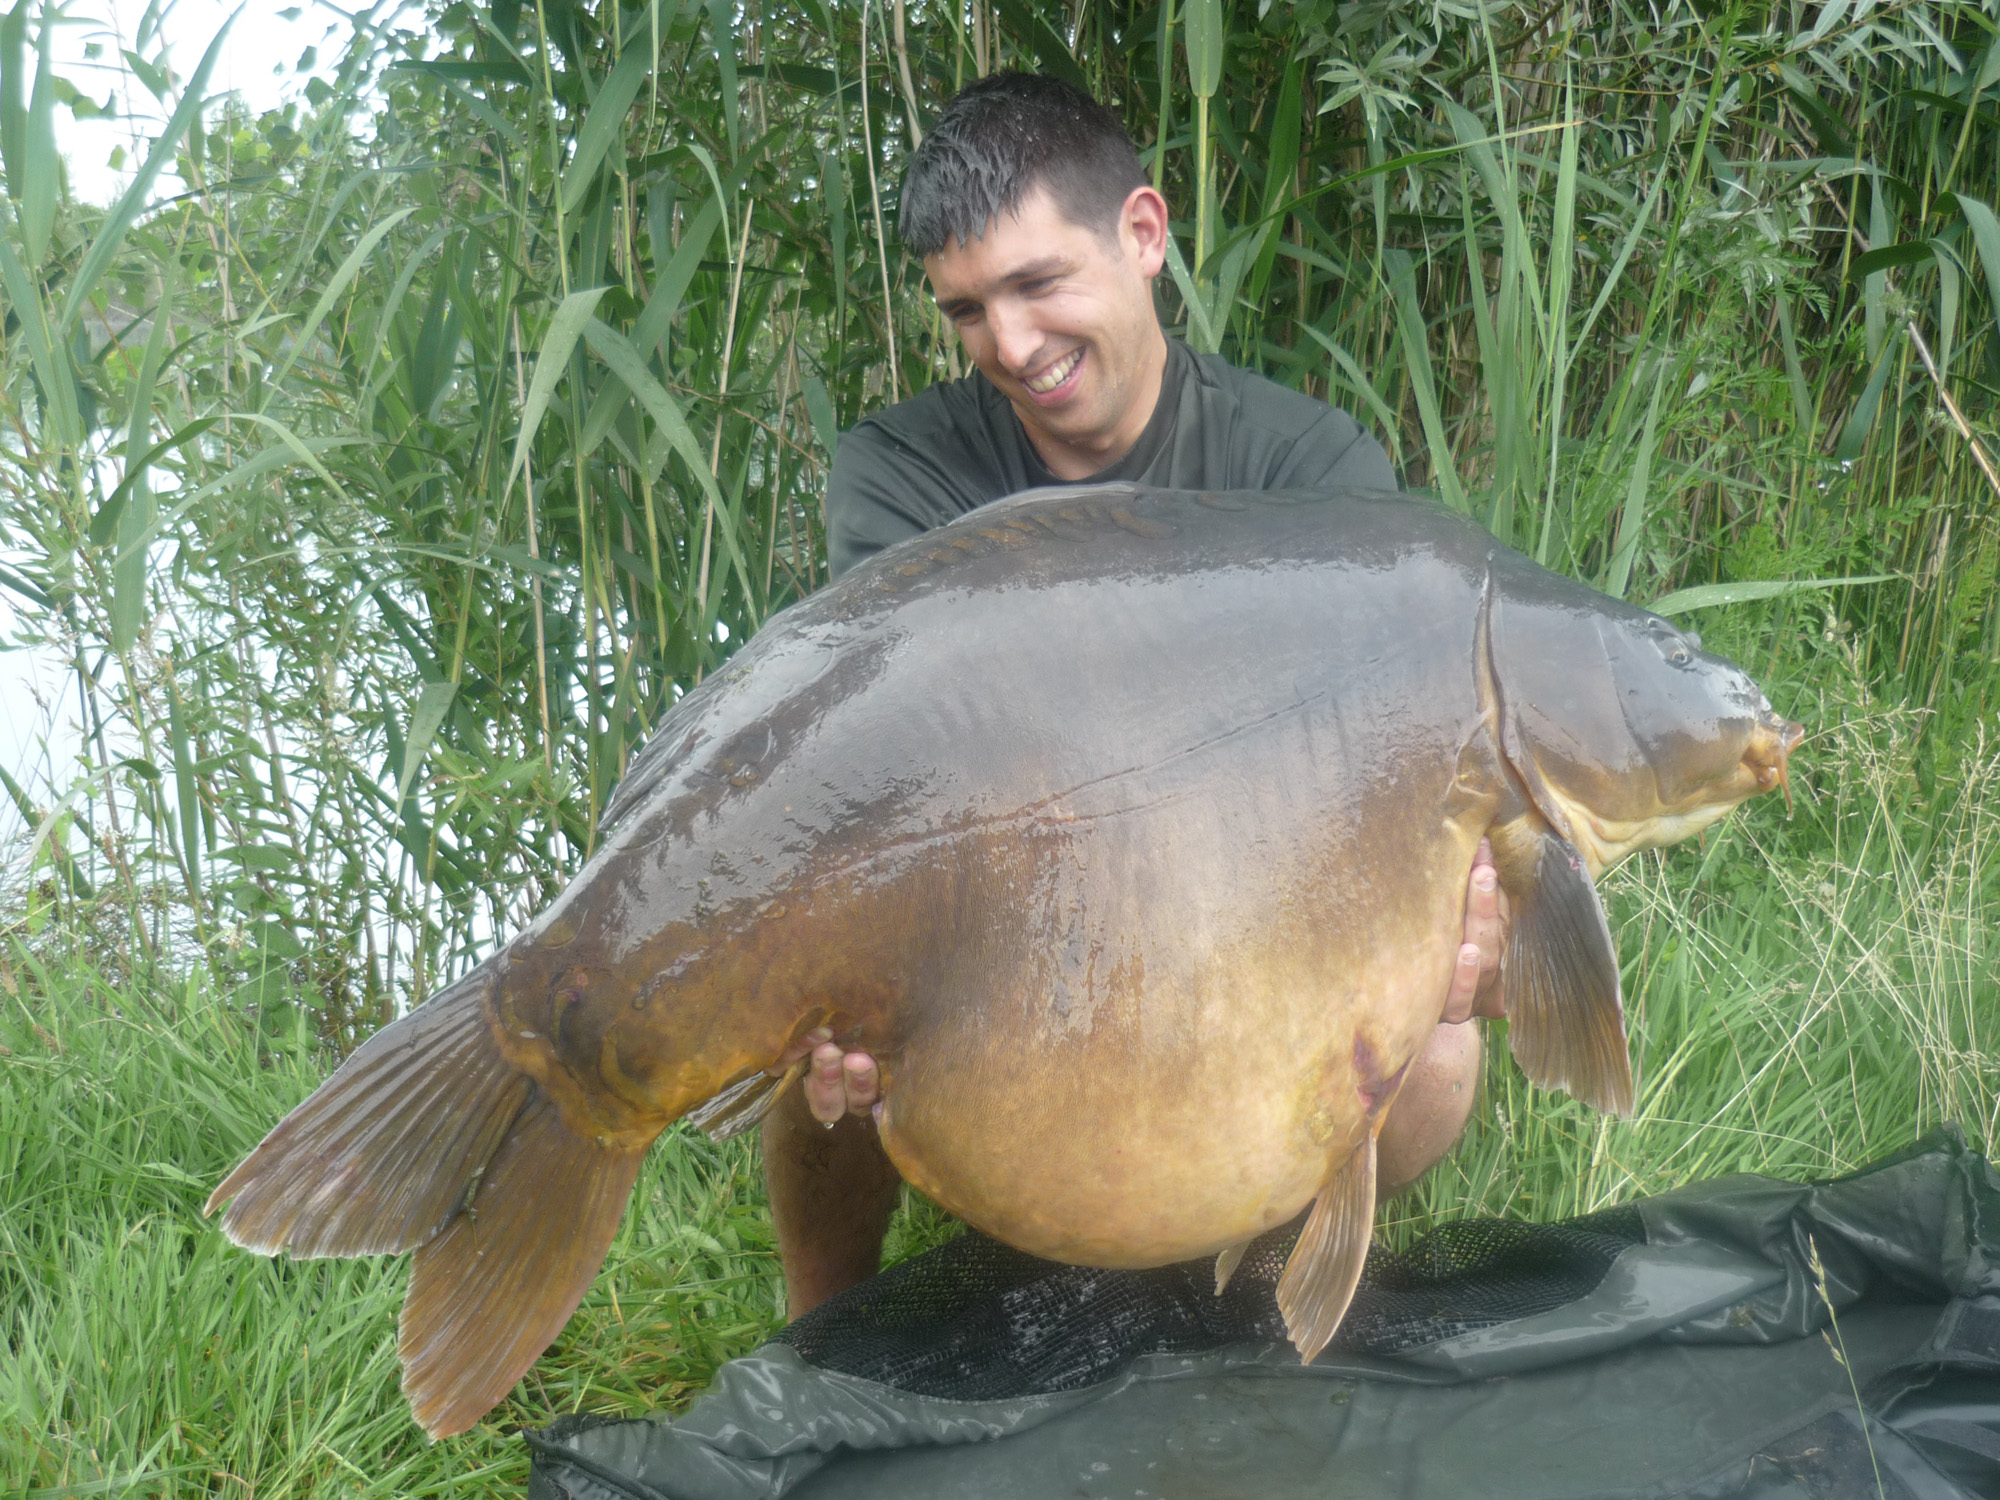 http://starbaits.com/fichiers/images/team/gallery/DUCERE_Cedric/4-DUCERE-CEDRIC.JPG